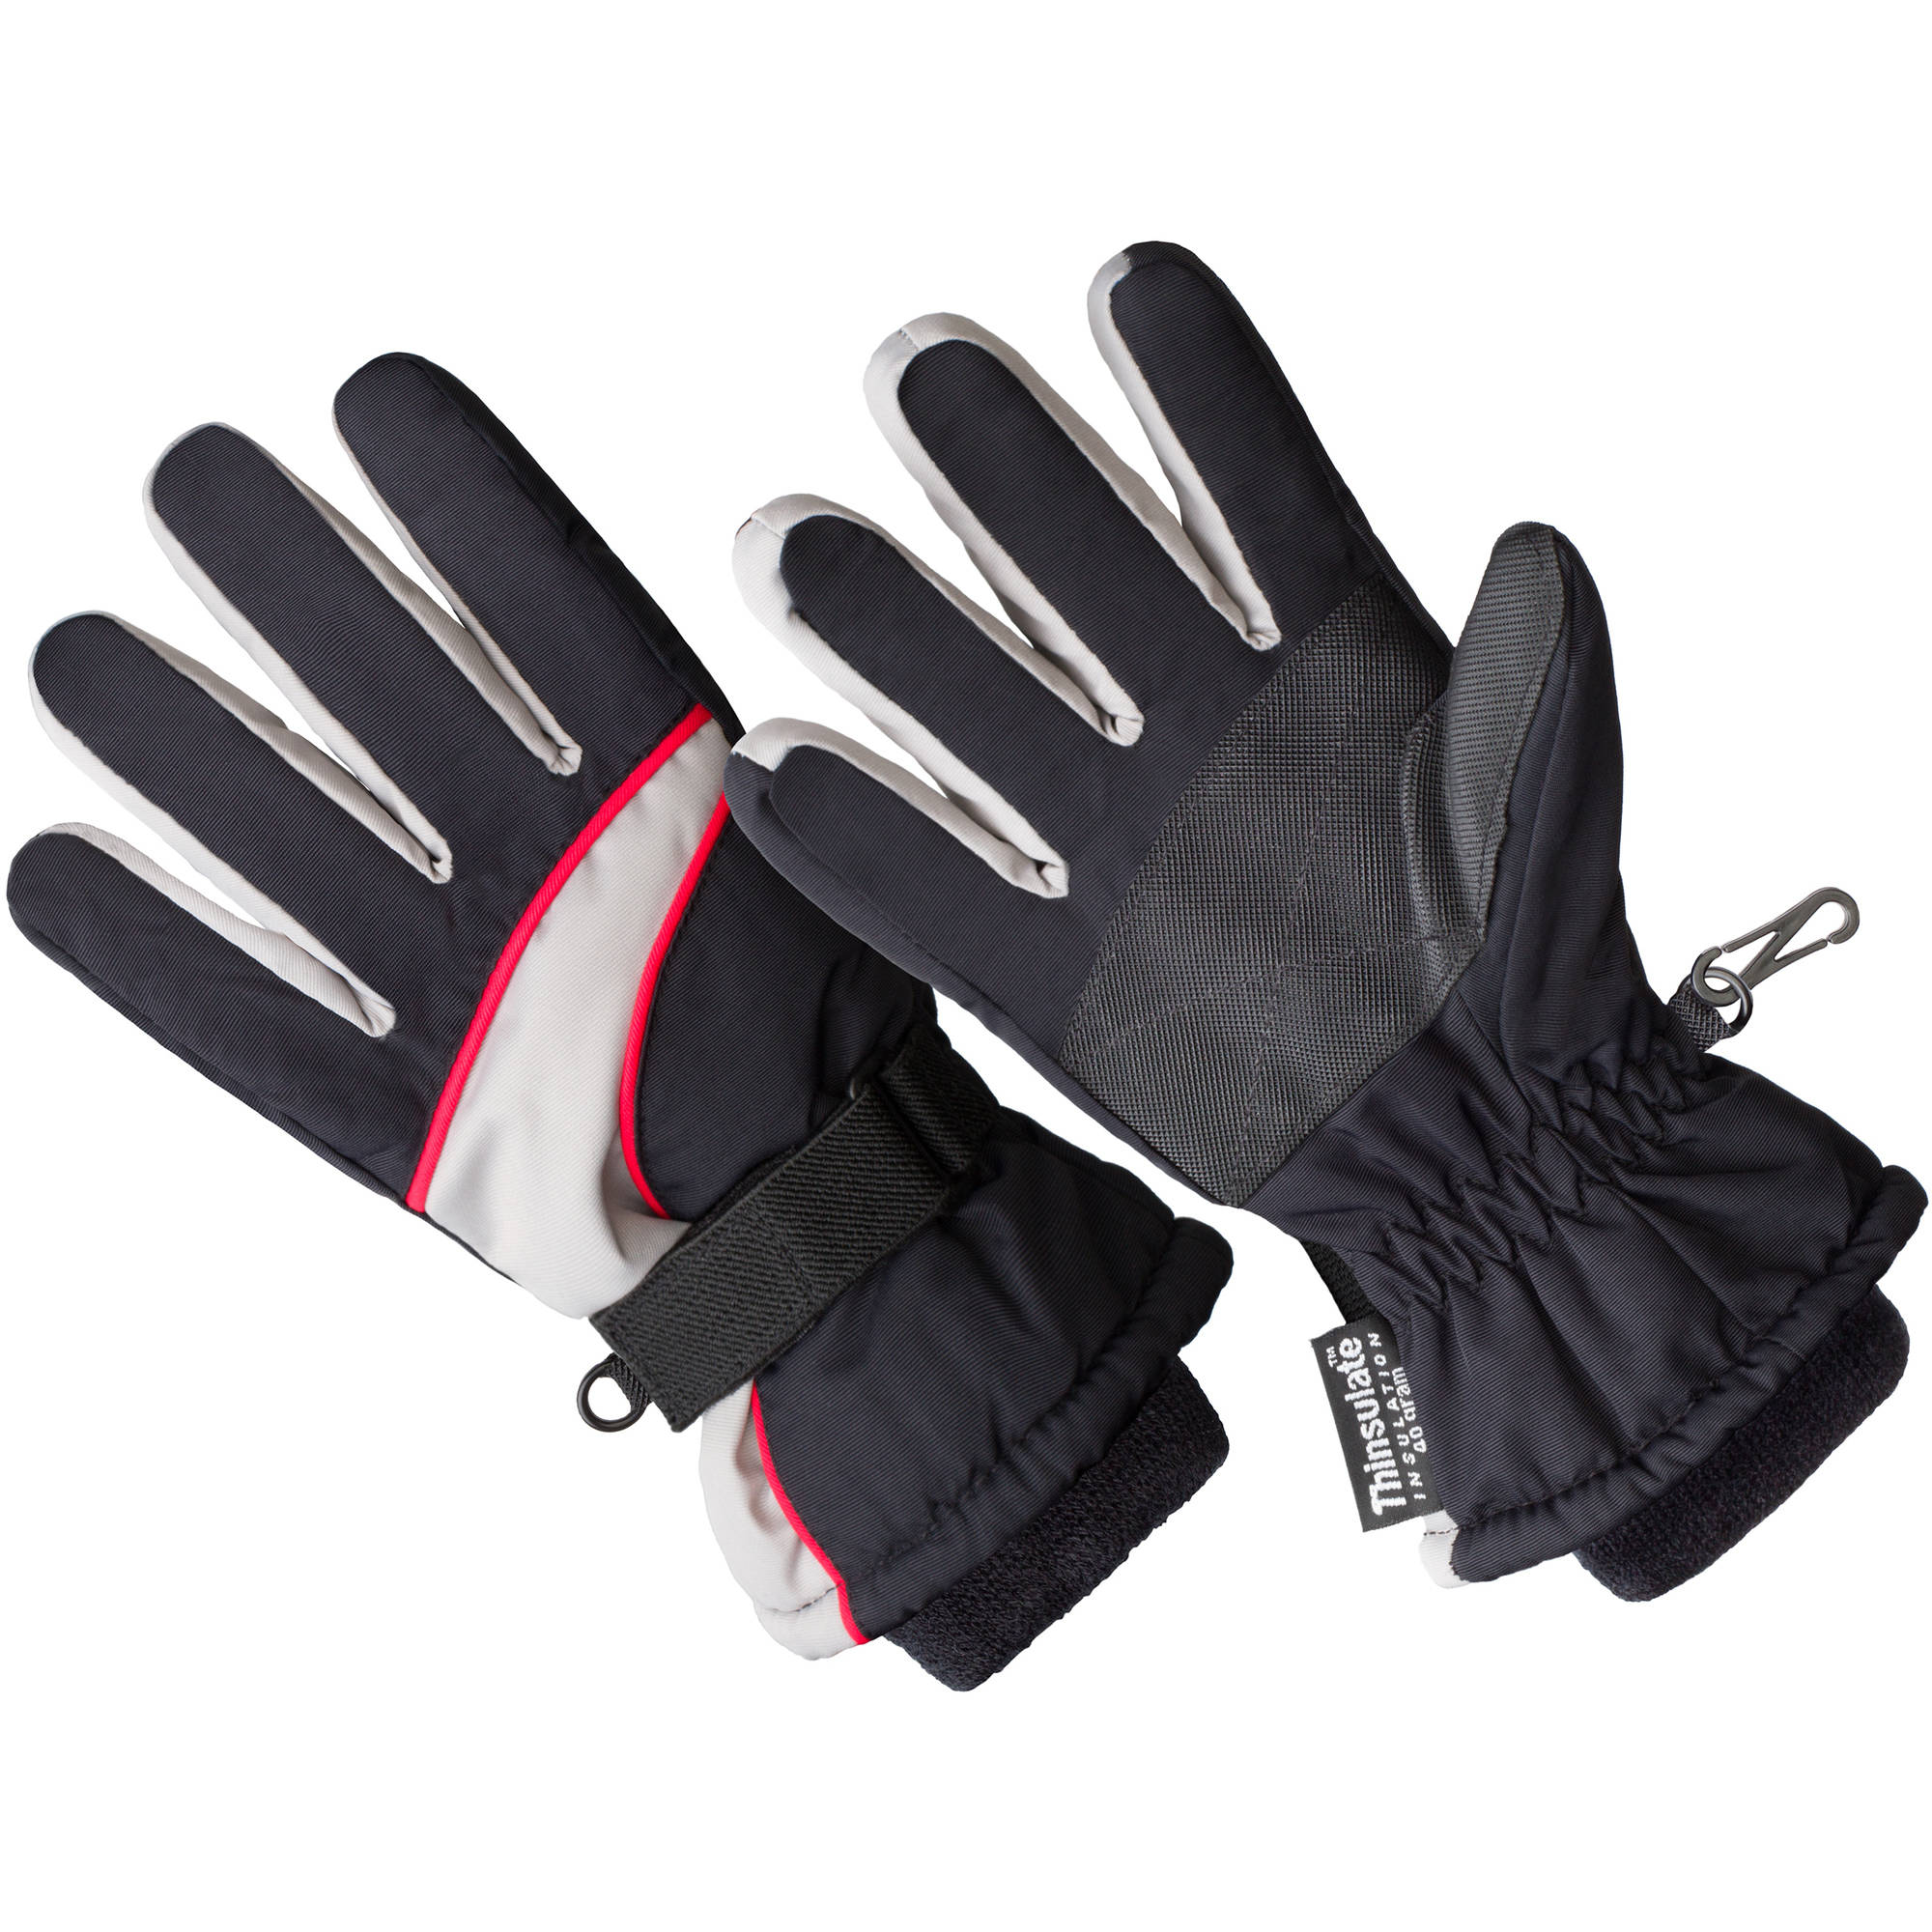 Hands On Boys Premium Ski Glove  Thinsulate Lined